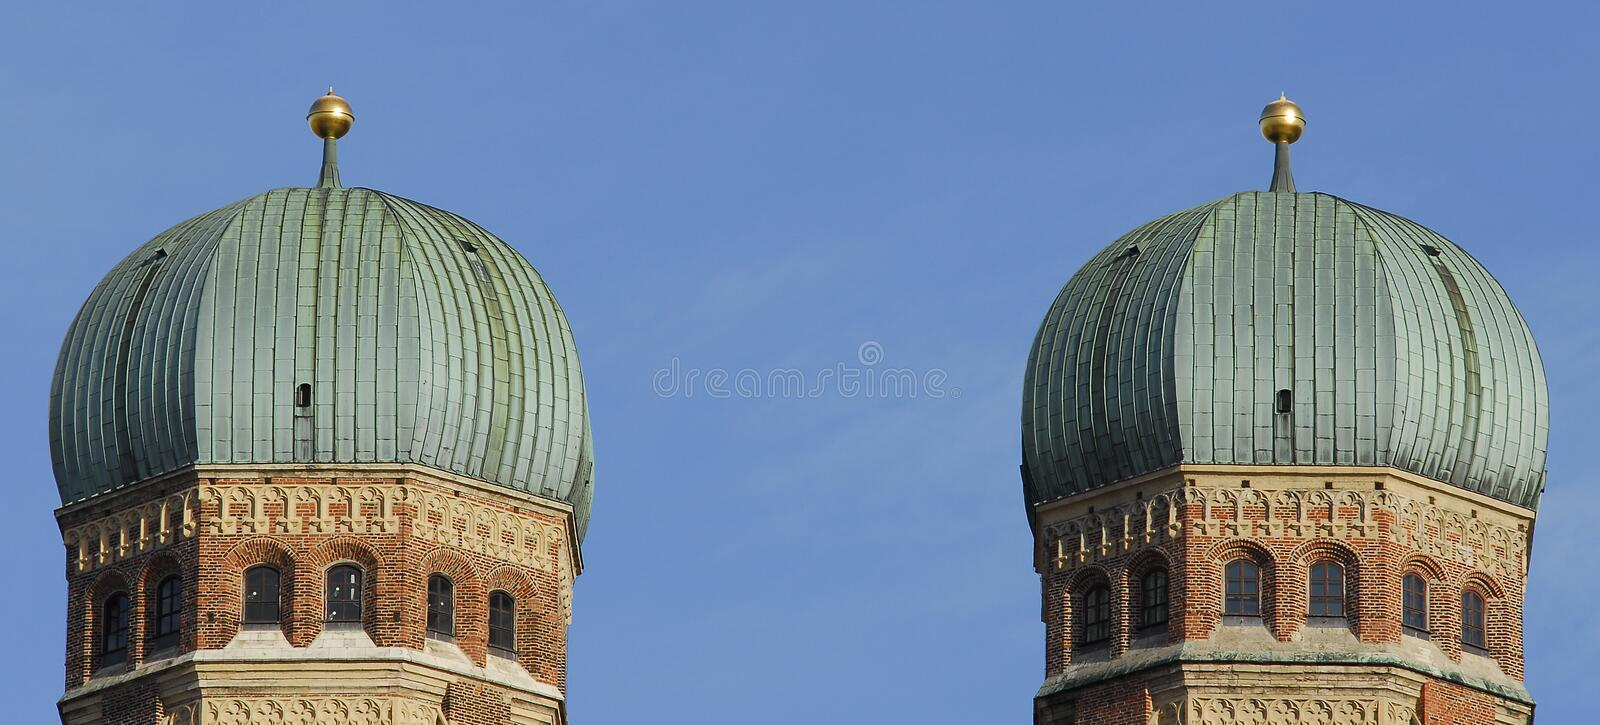 Download The Church Frauenkirche In Munich In Bavaria Stock Image - Image: 18341925